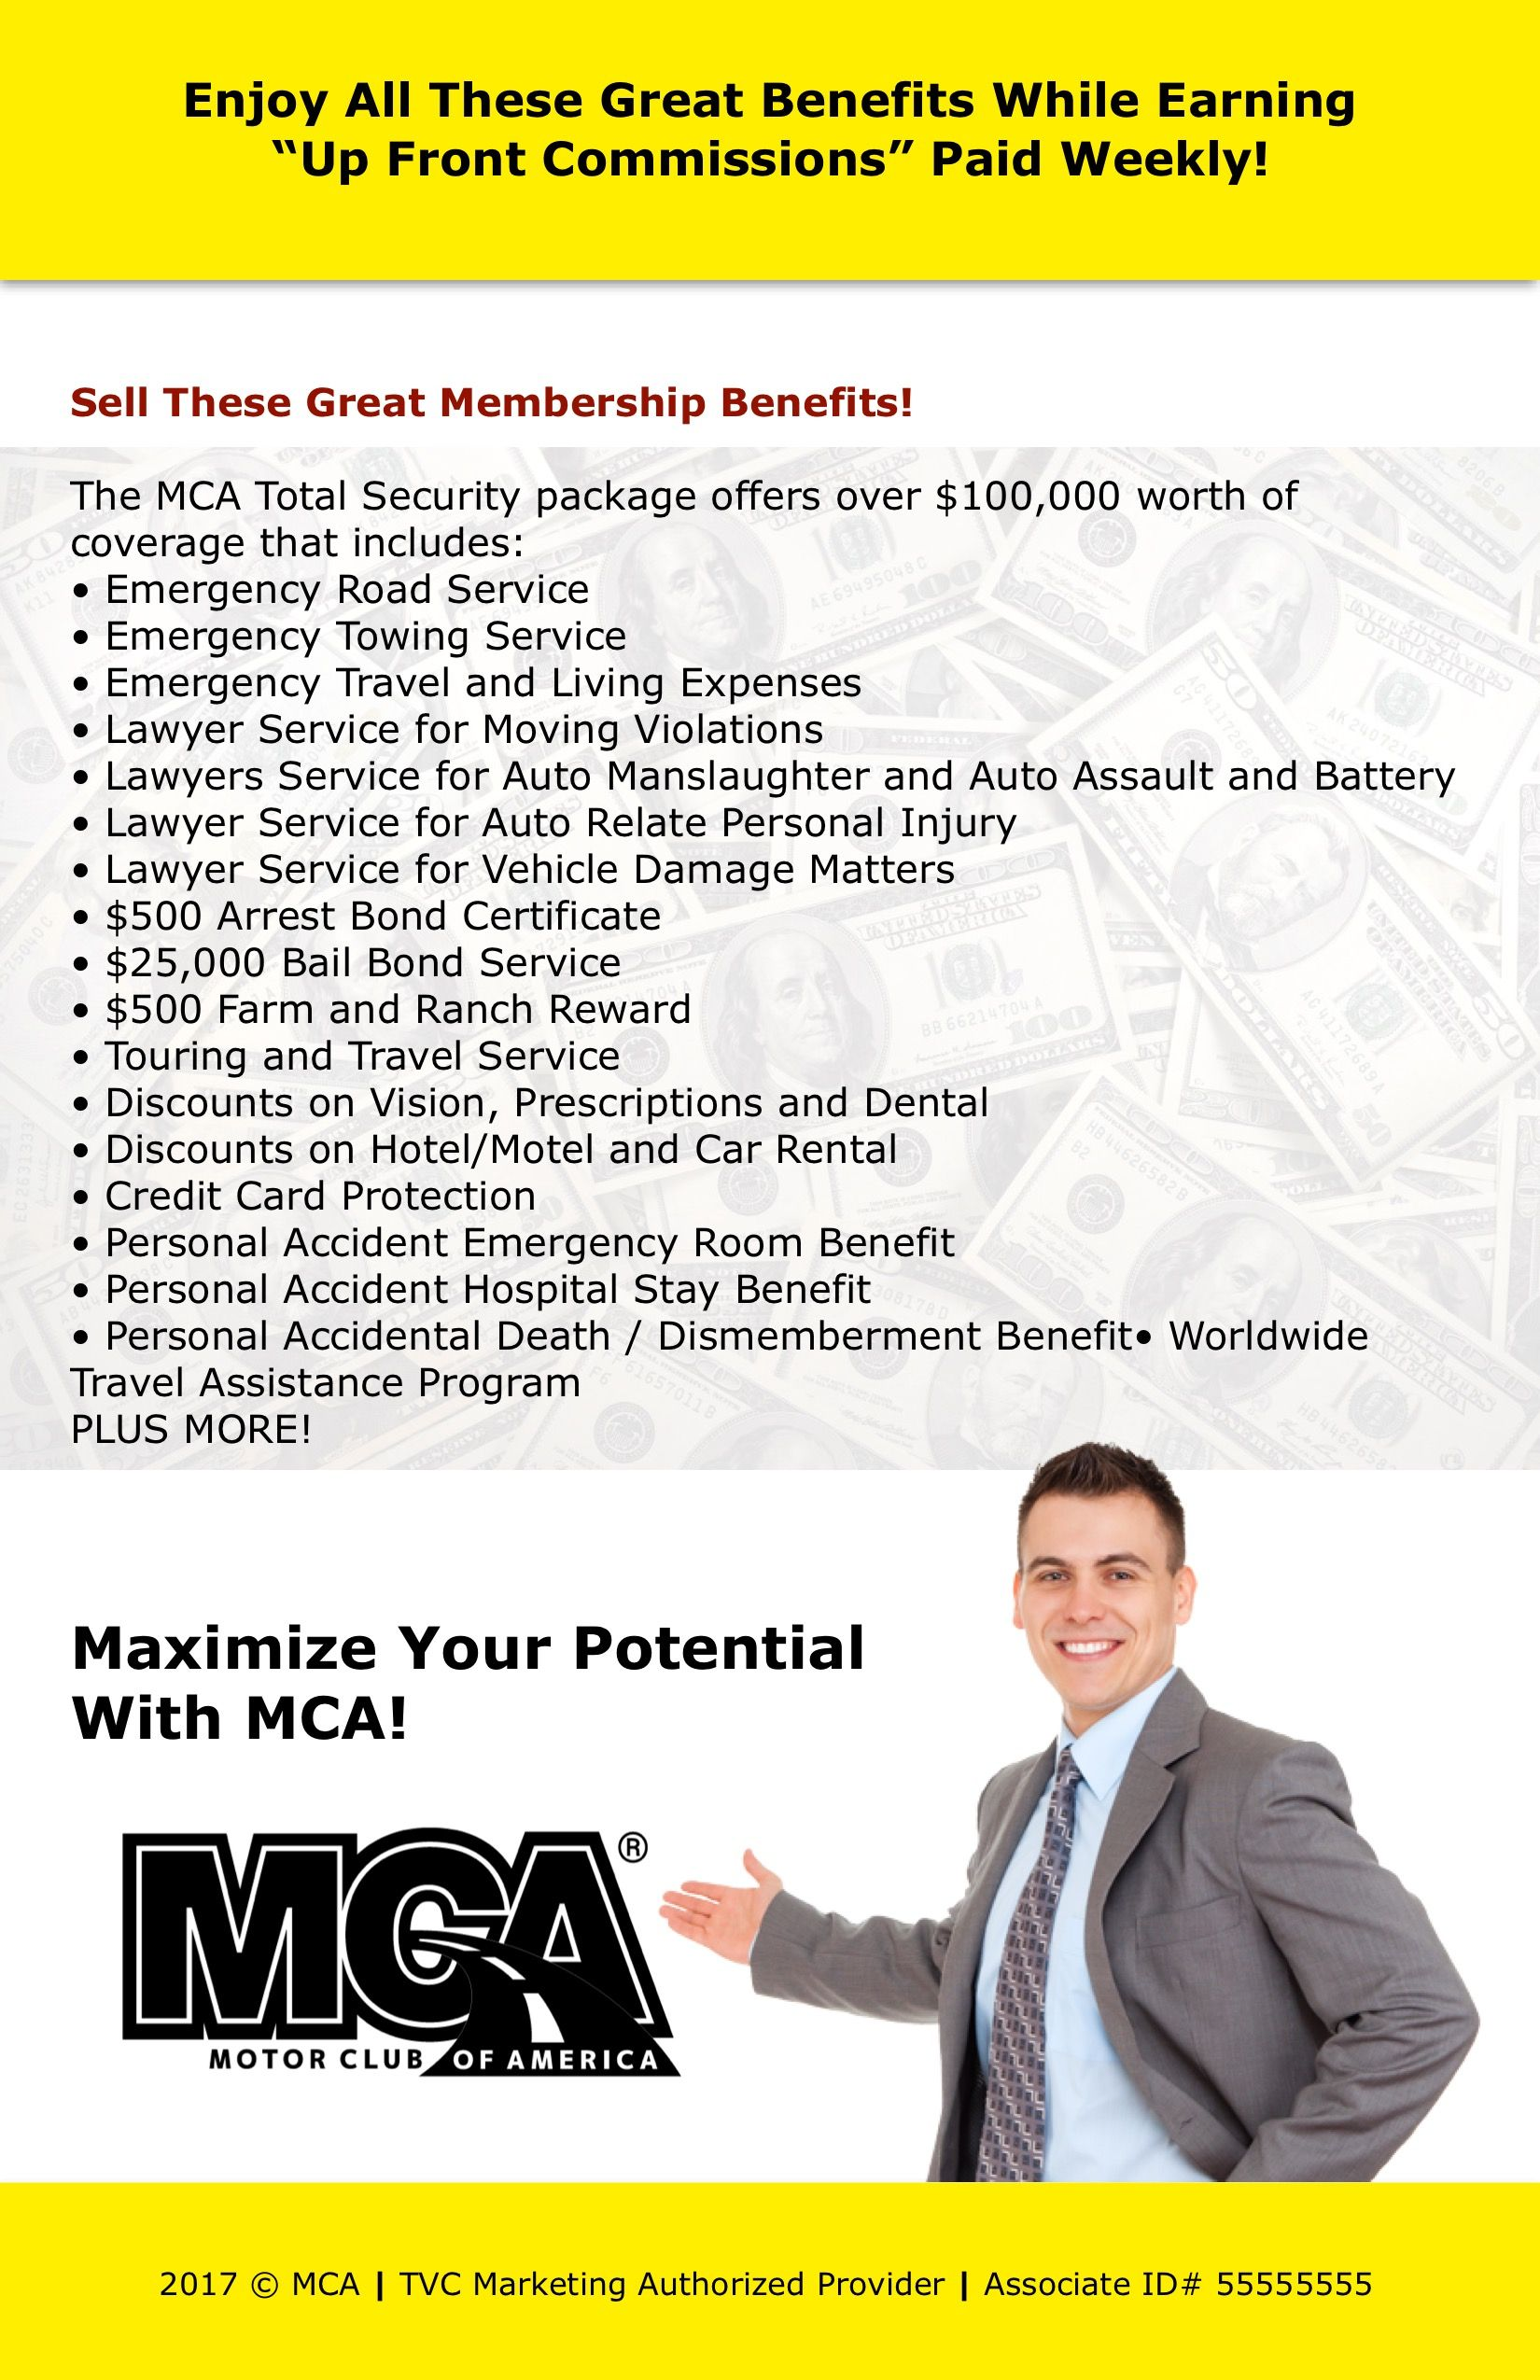 Lawyer Services Image By MCA One Source On Flyers